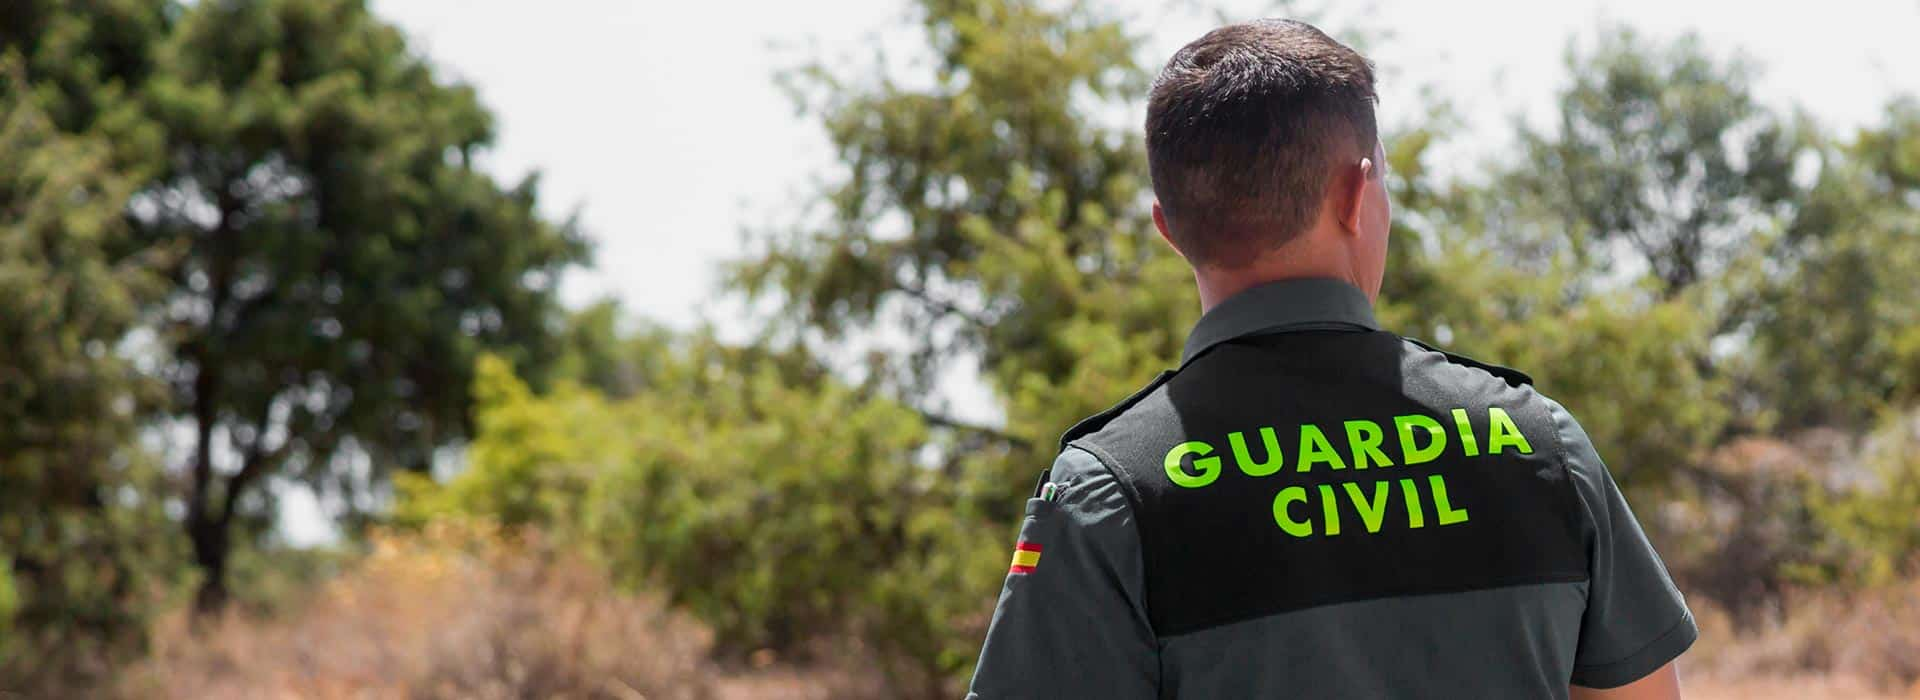 Prepara las oposiciones a Guardia Civil 2020-2021